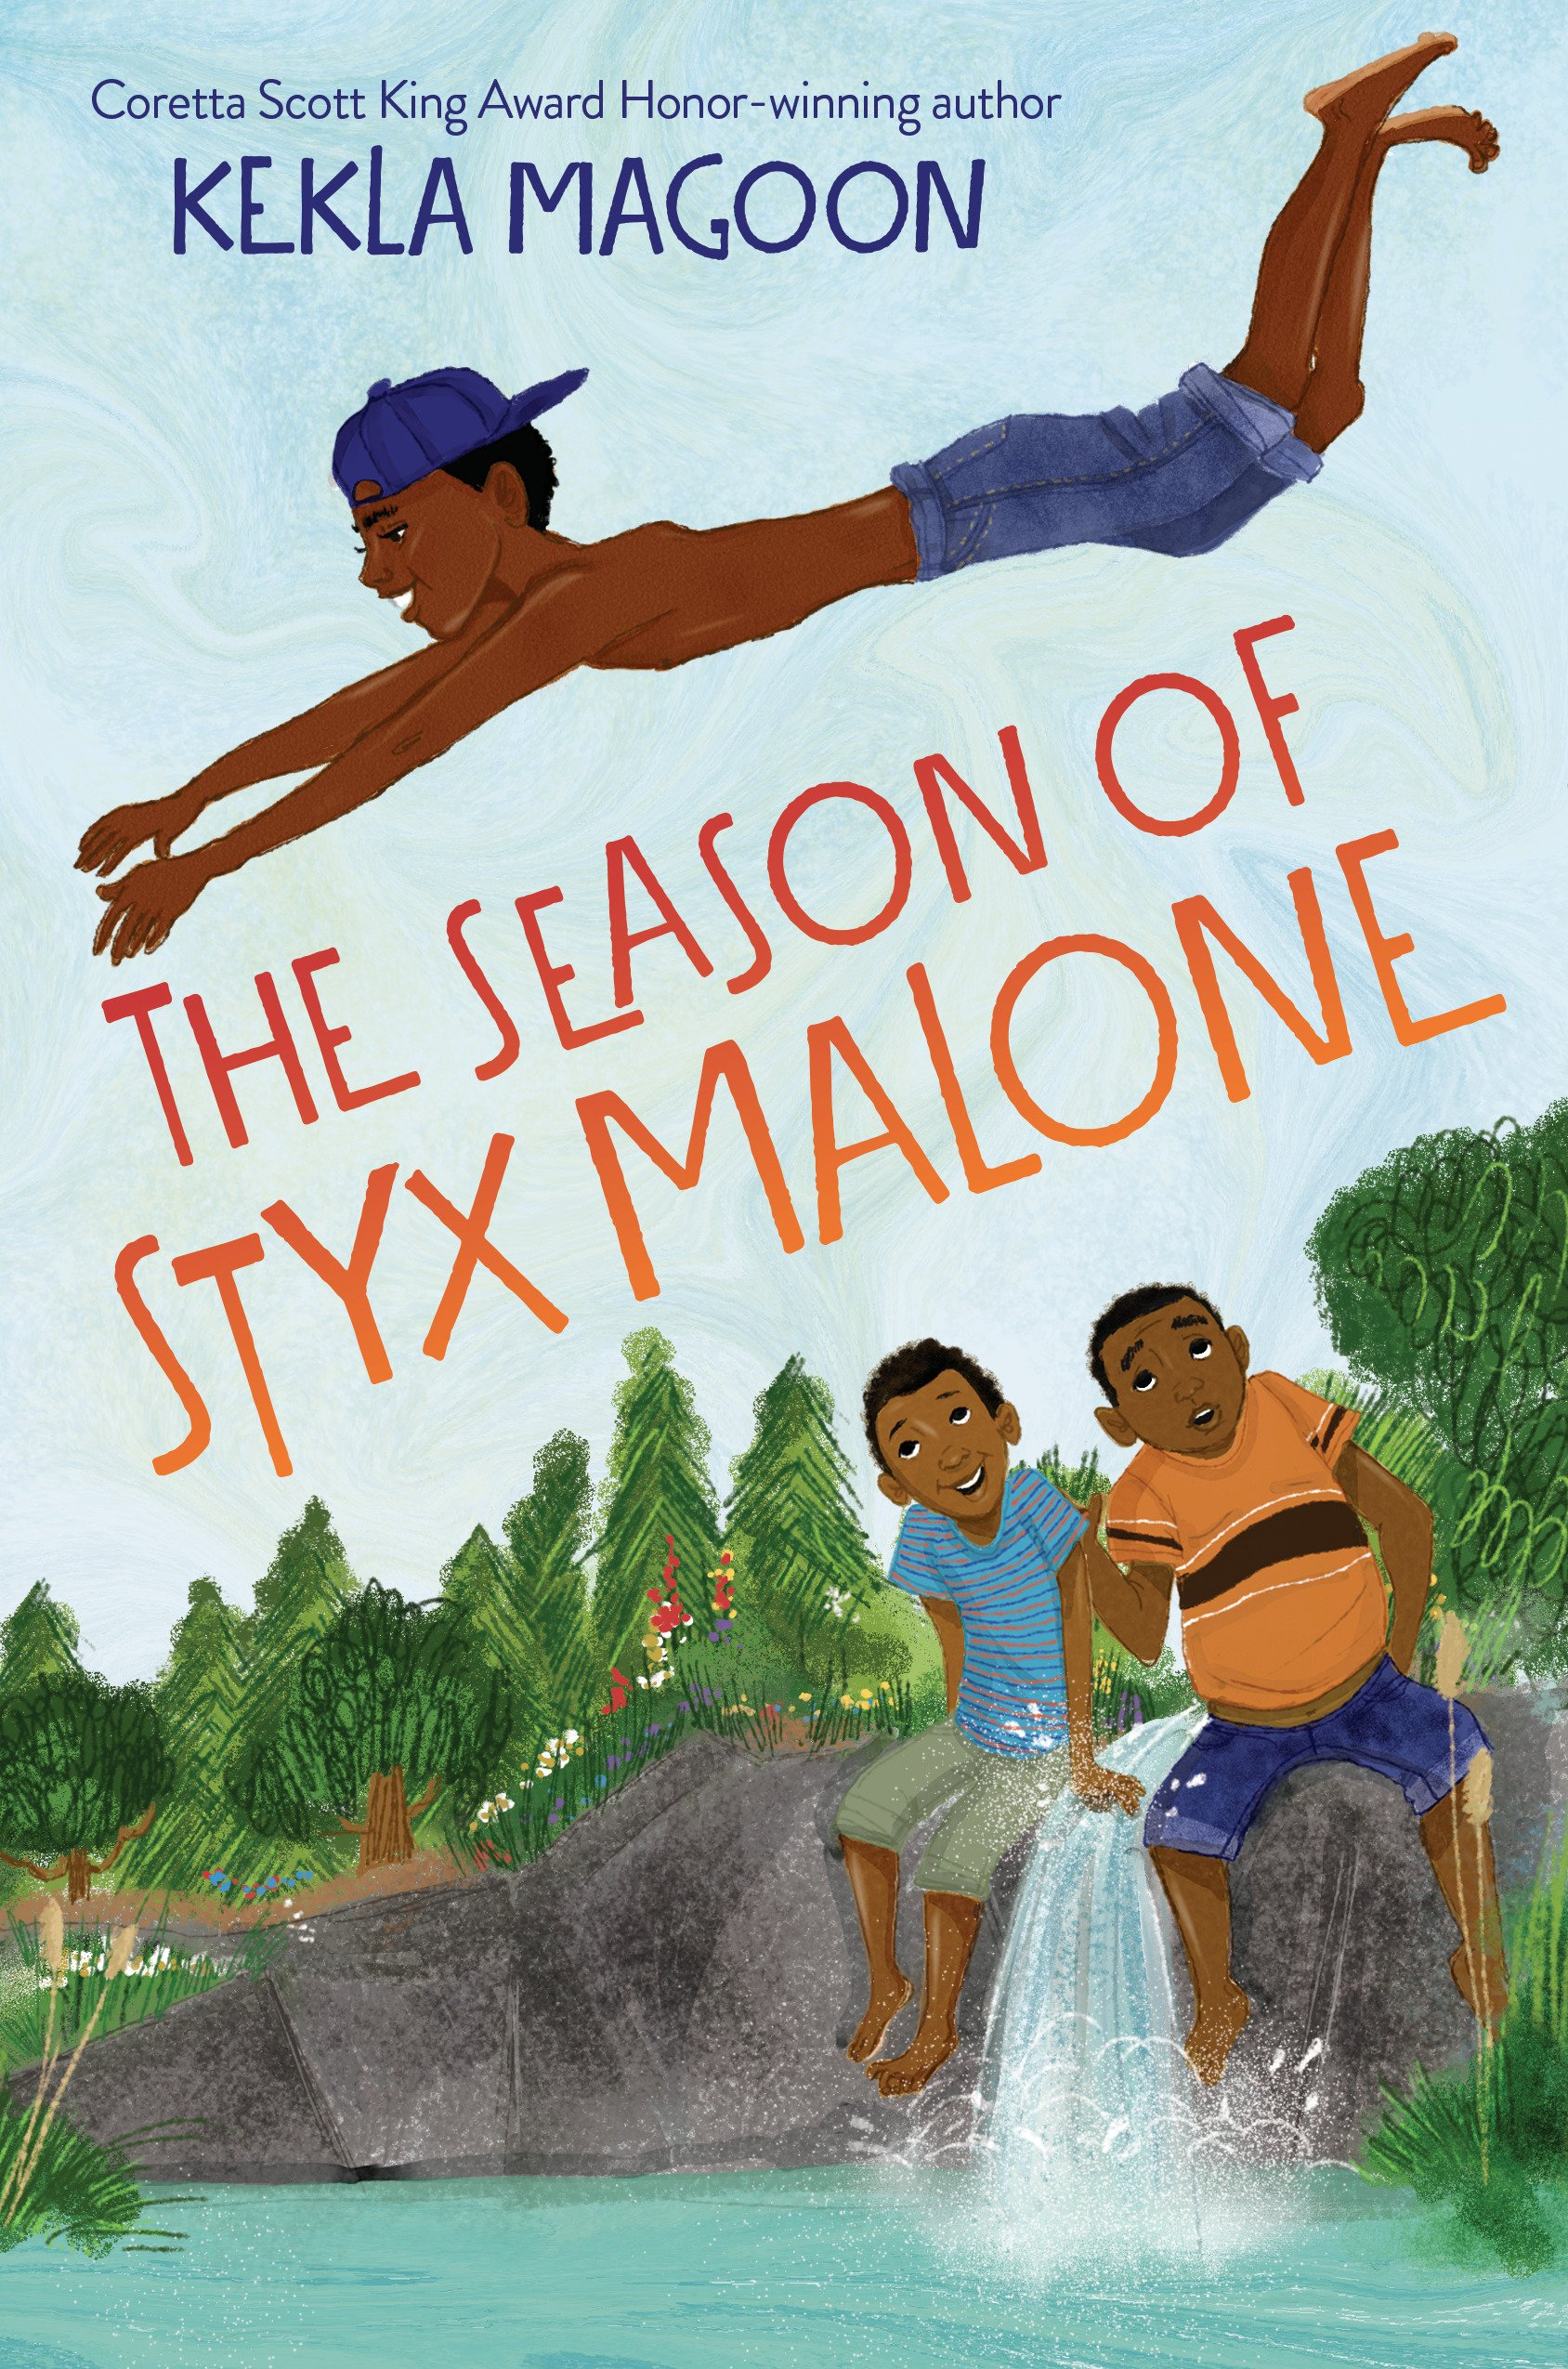 The Season of Styx Malone by Kekla Magoon | SLJ Review